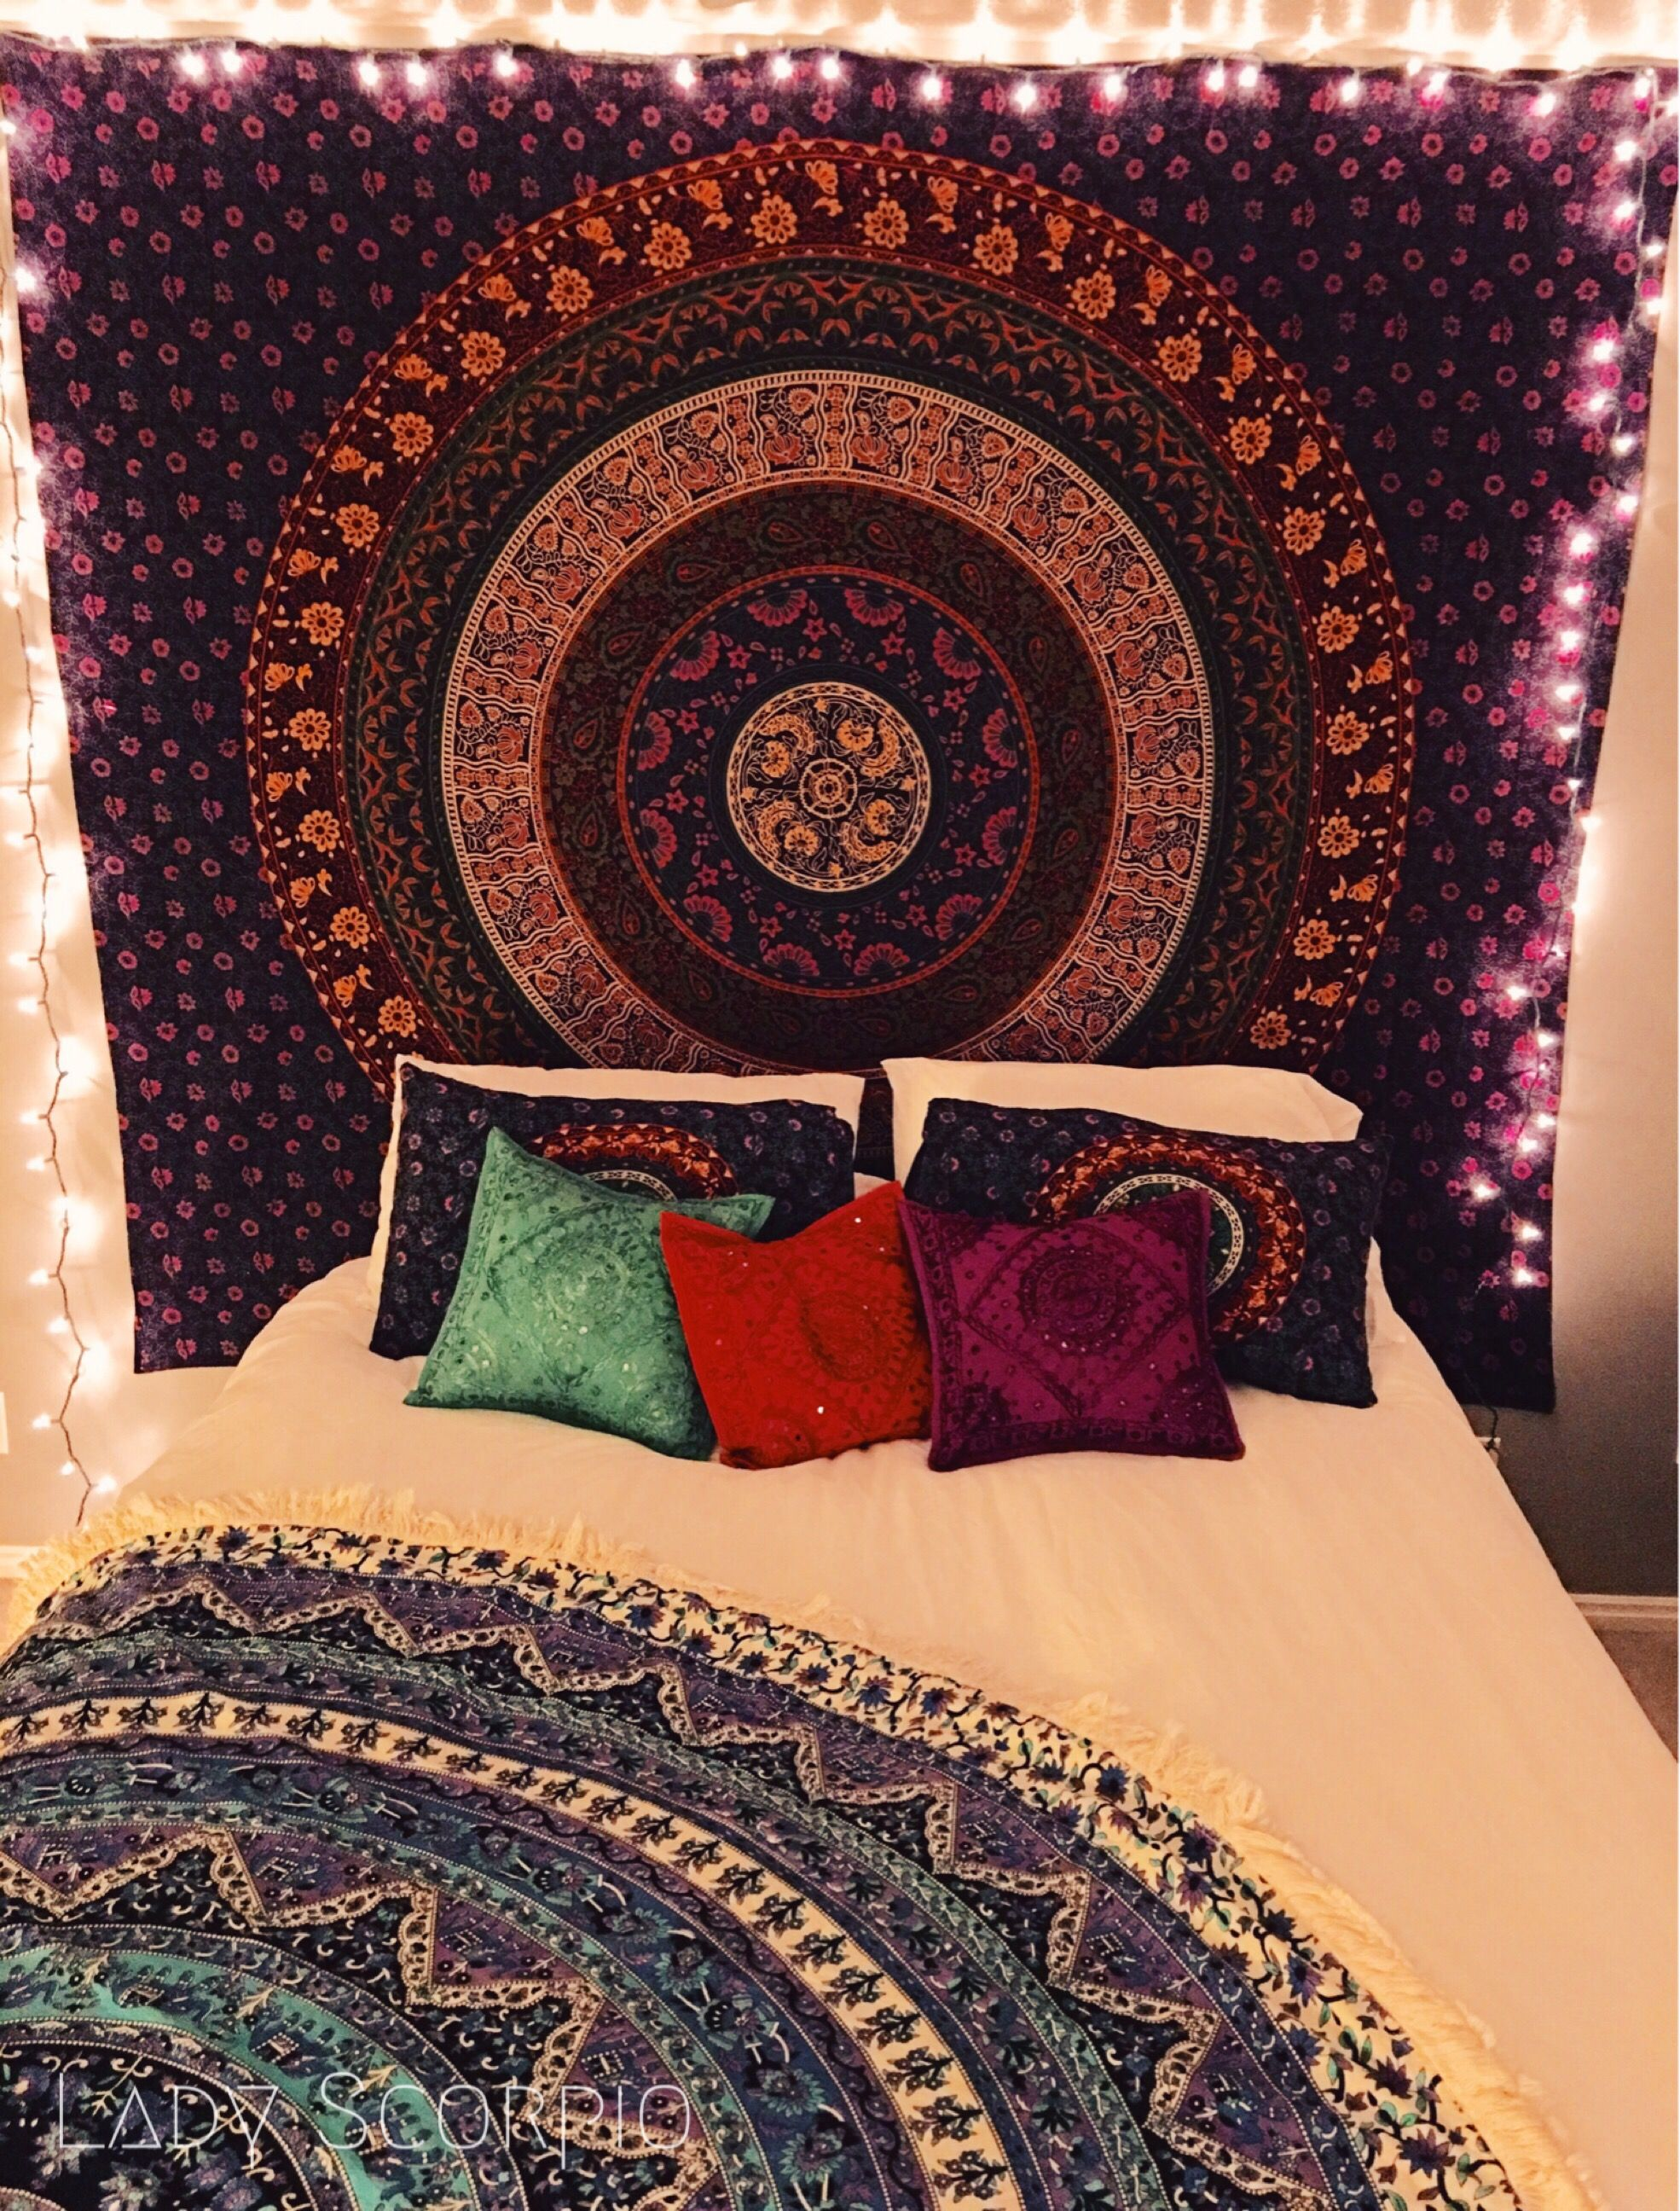 Lady Scorpio Bohemian Bedroom, Filled With Gypsy Mandala Tapestries